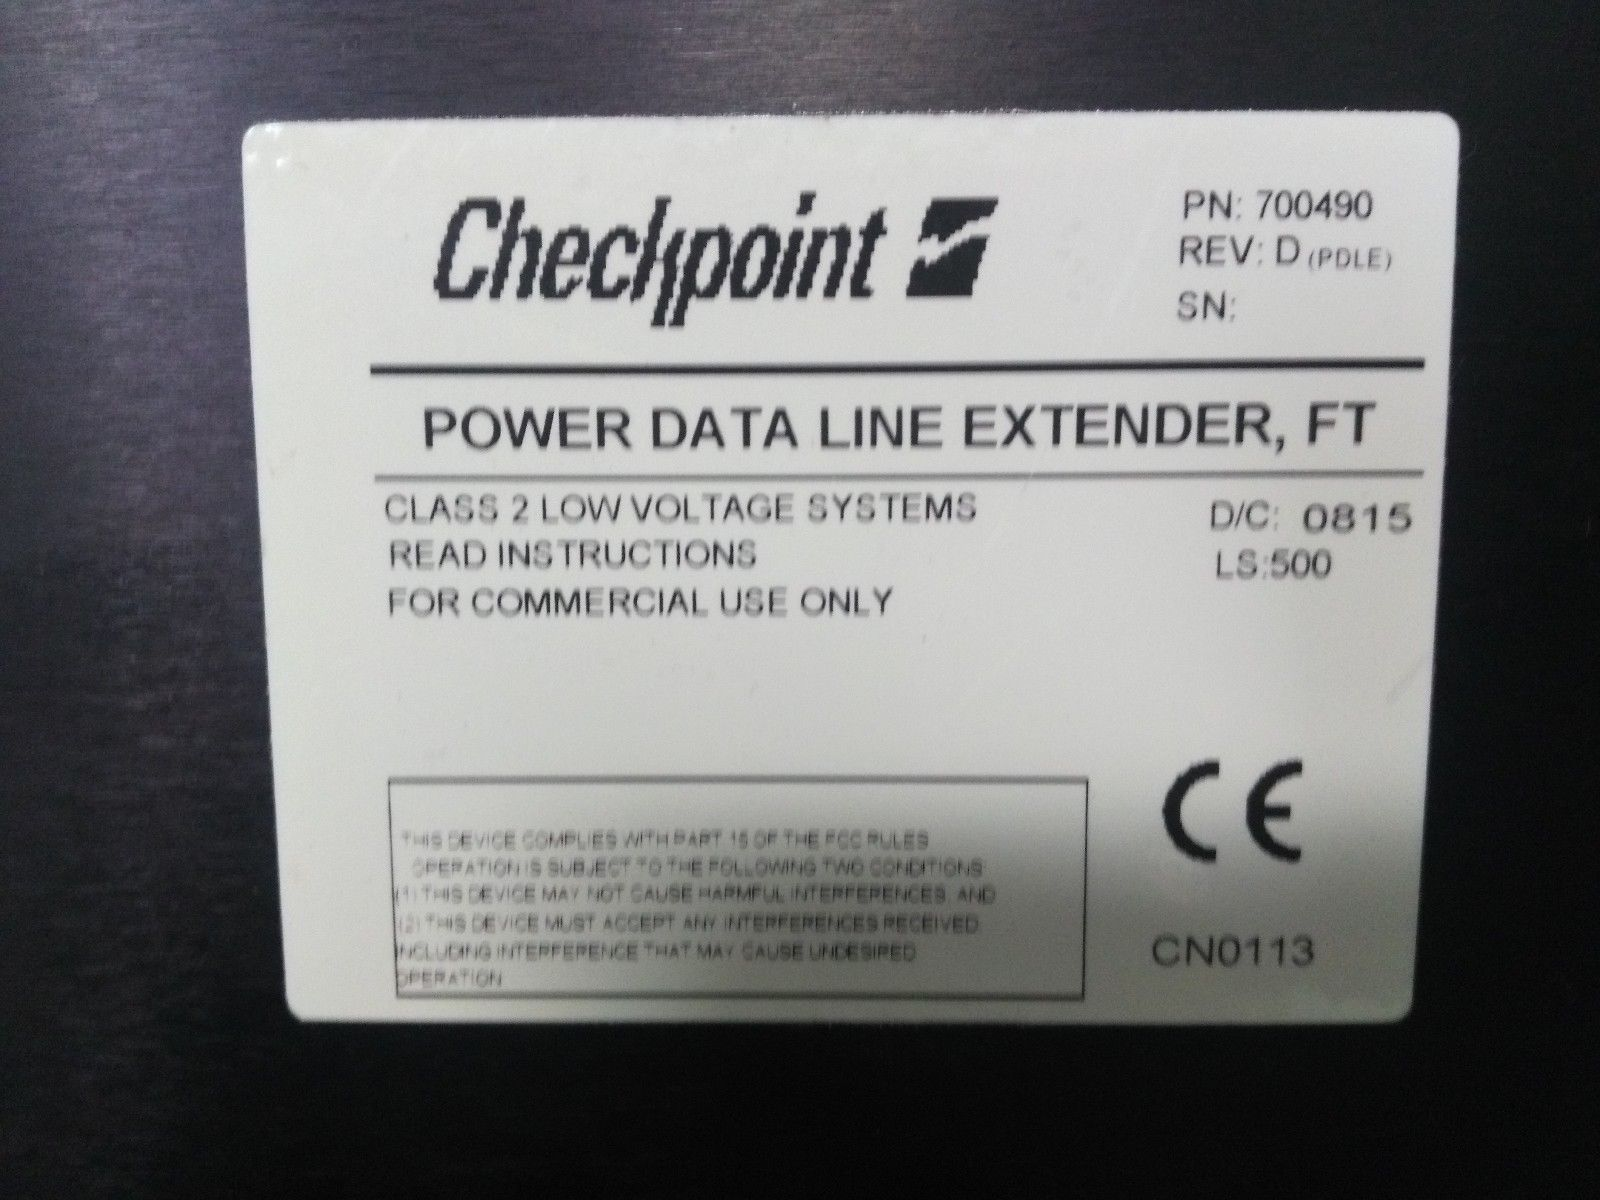 Checkpoint Clarity CCTV Data Line Extender Remanufacturing  Service, (1) Year Warranty-0